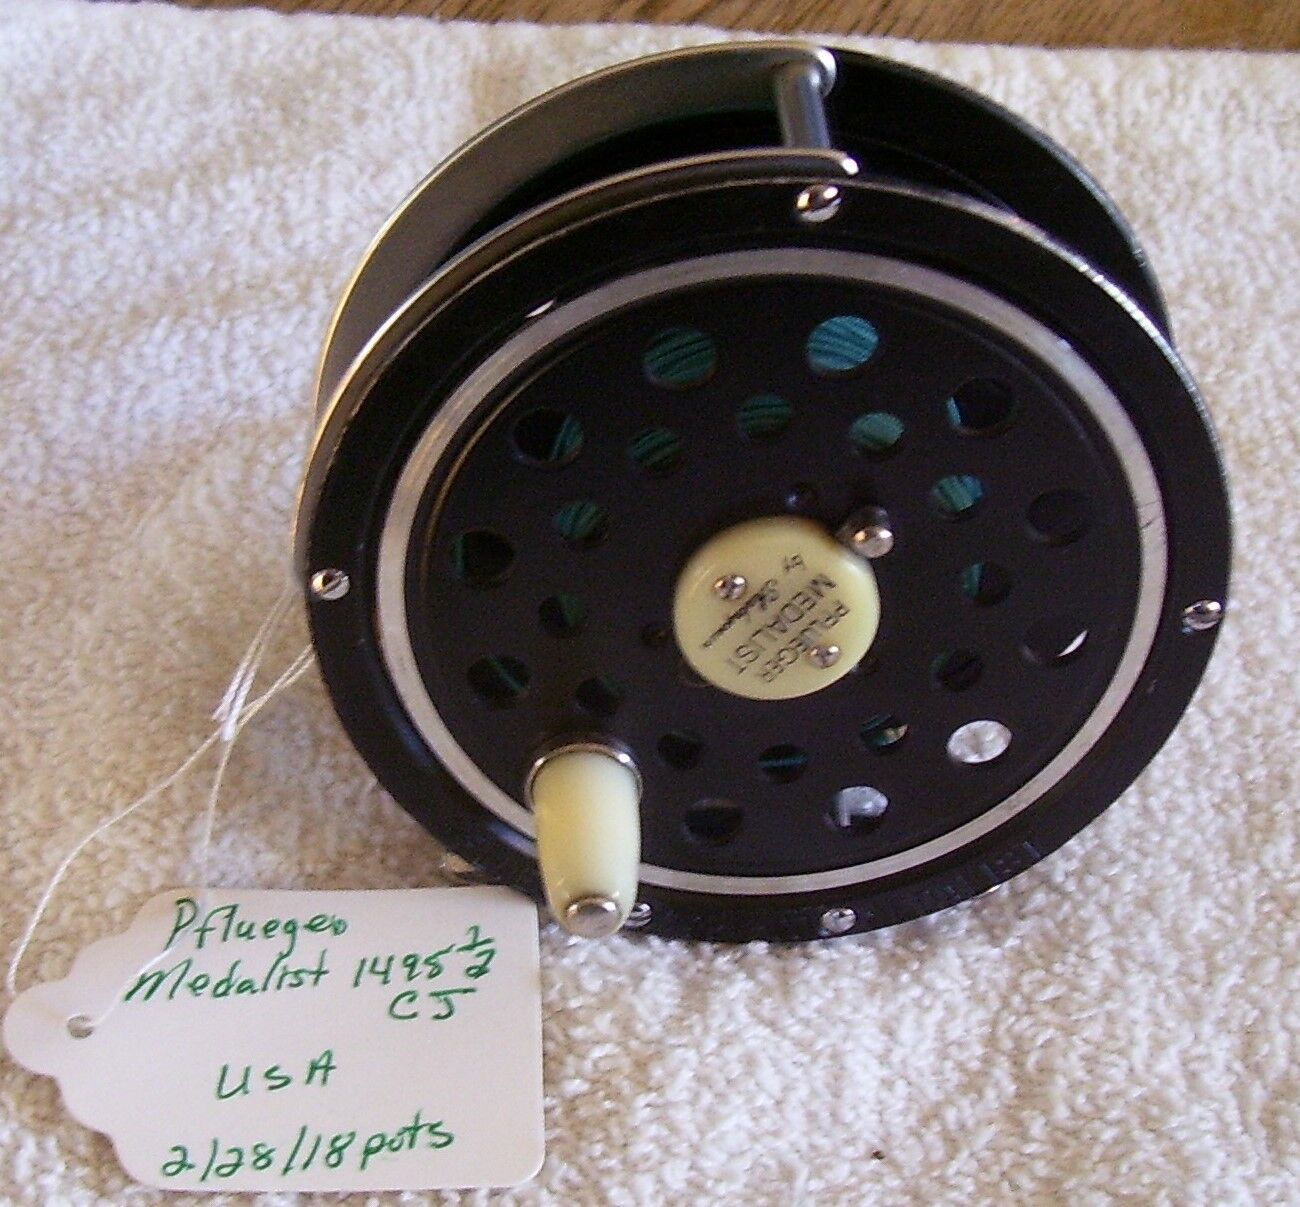 PFLUEGER MEDALIST 1495 1 2 FLY REEL 3-5 8  X 1-3 8    TAG IS WRONG MADE IN JAPAN